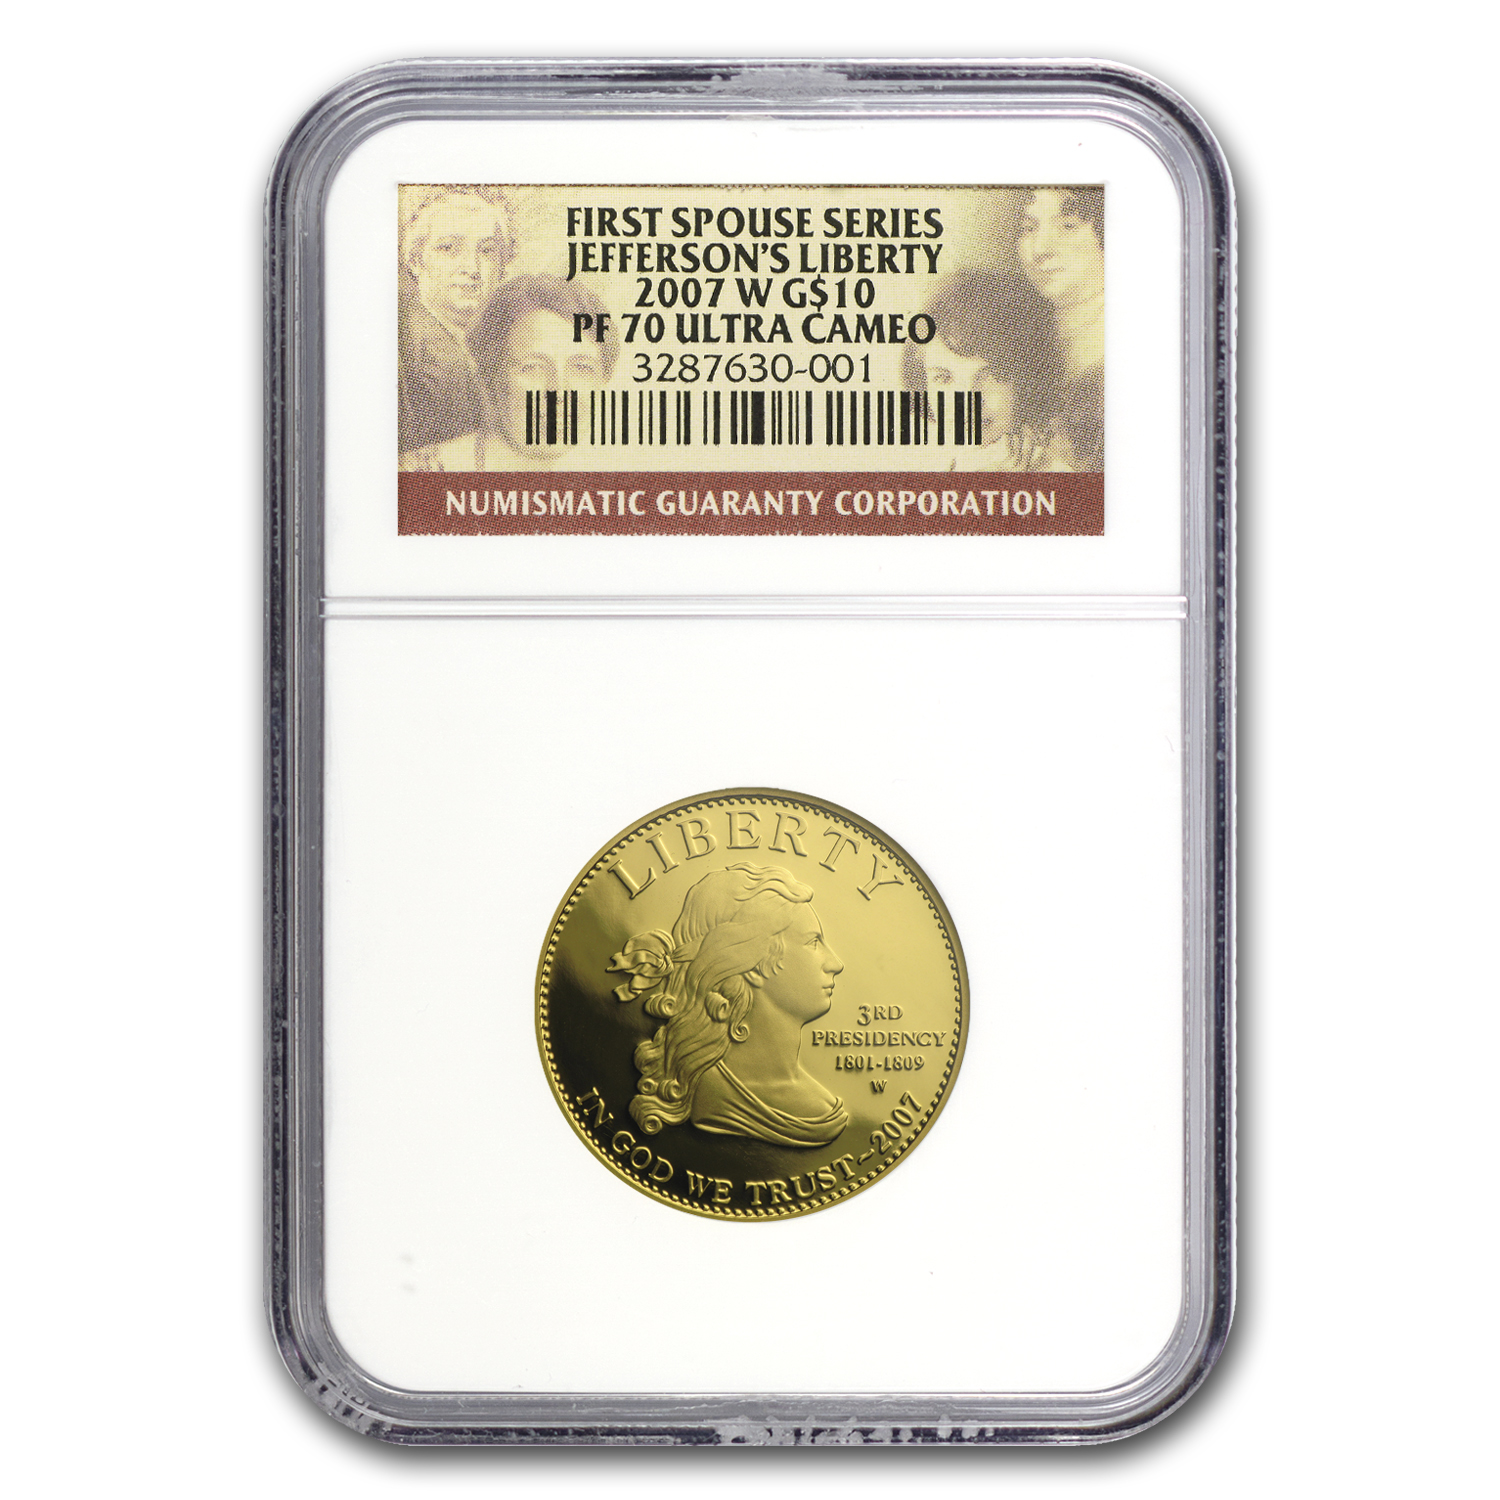 2007-W 1/2 oz Proof Gold Jefferson's Liberty PF-70 NGC UCAM